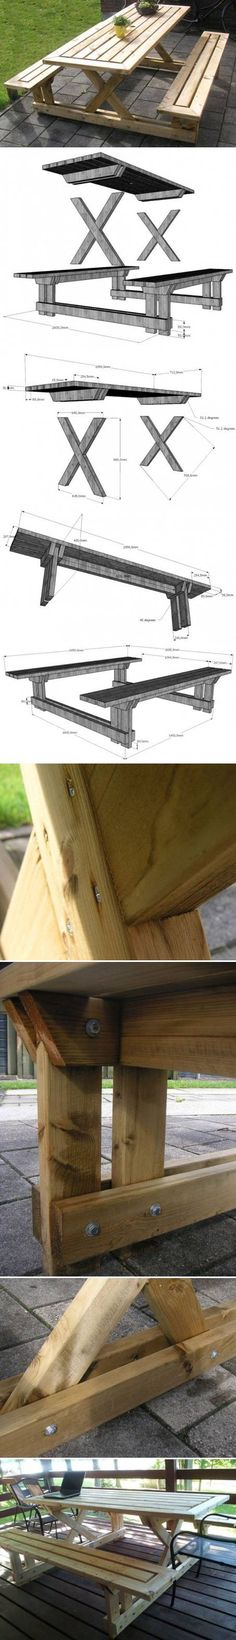 DIY Wood Garden Table With Bench | https://www.FabArtDIY.com LIKE Us on Facebook ==> www.facebook.com/... more info about round patio table read here: http://roundpatiotable.net/